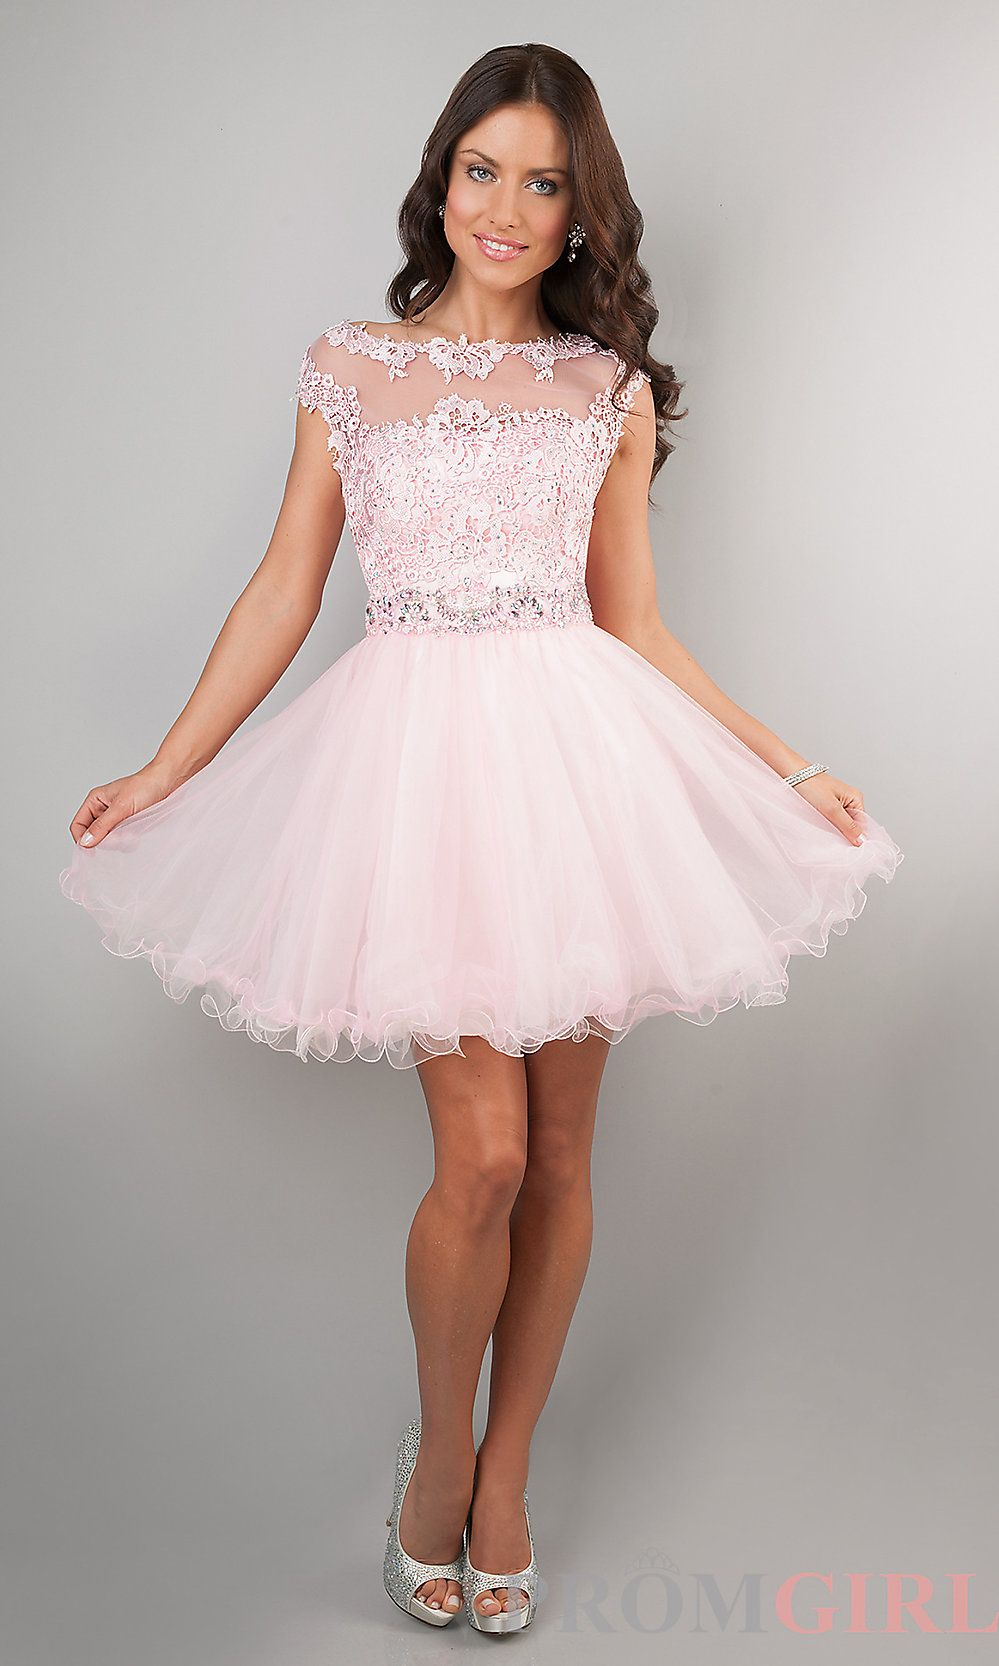 Short Cap Sleeve Lace Dress By Dave And Johnny Junior Cocktail Dresses Tulle Homecoming Dress Homecoming Dresses 2015 [ 1666 x 999 Pixel ]